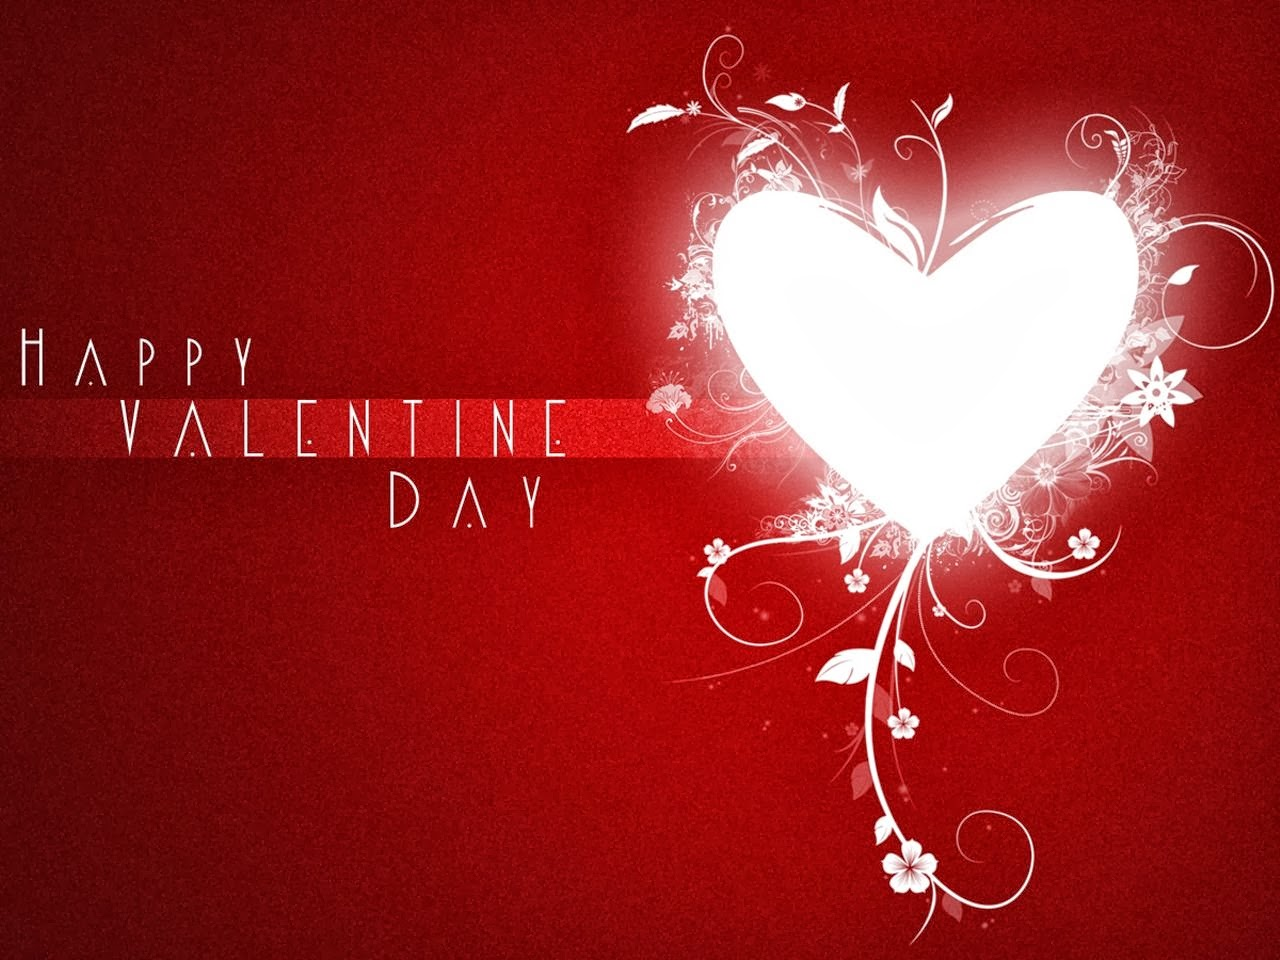 Valentines Day Animated Wallpaper - Free downloads and ...